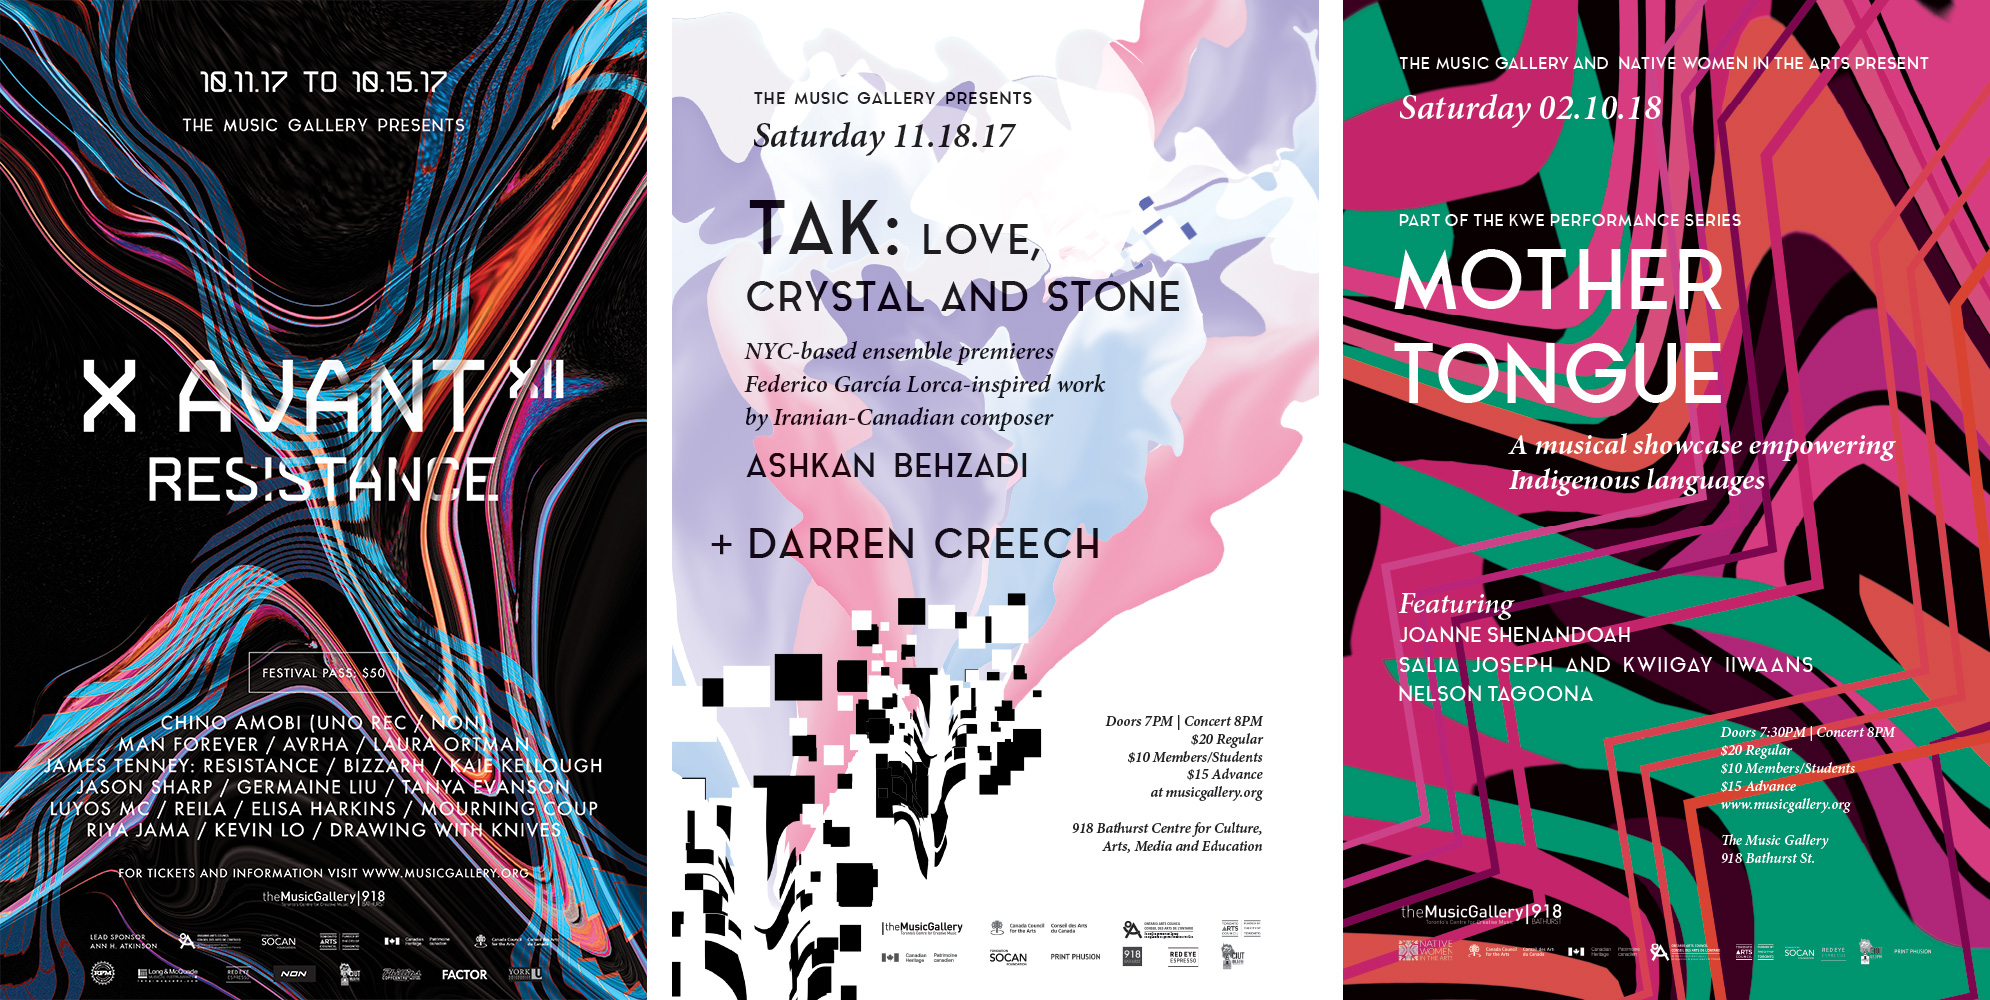 "Image of three posters produced for The Music Gallery's 2017-2018 season. The first poster (left) is for the 12th edition of X Avant Festival. It consists of a wavy blue and red ""X"" stretching over a black background. The center and right posters are for the first two concerts in the season. The center poster shows a cloud-like shape coming out of a series of white and black squares at the bottom of the canvas. The right poster shows an assymetrical pattern of pink, green, orange and black waves."